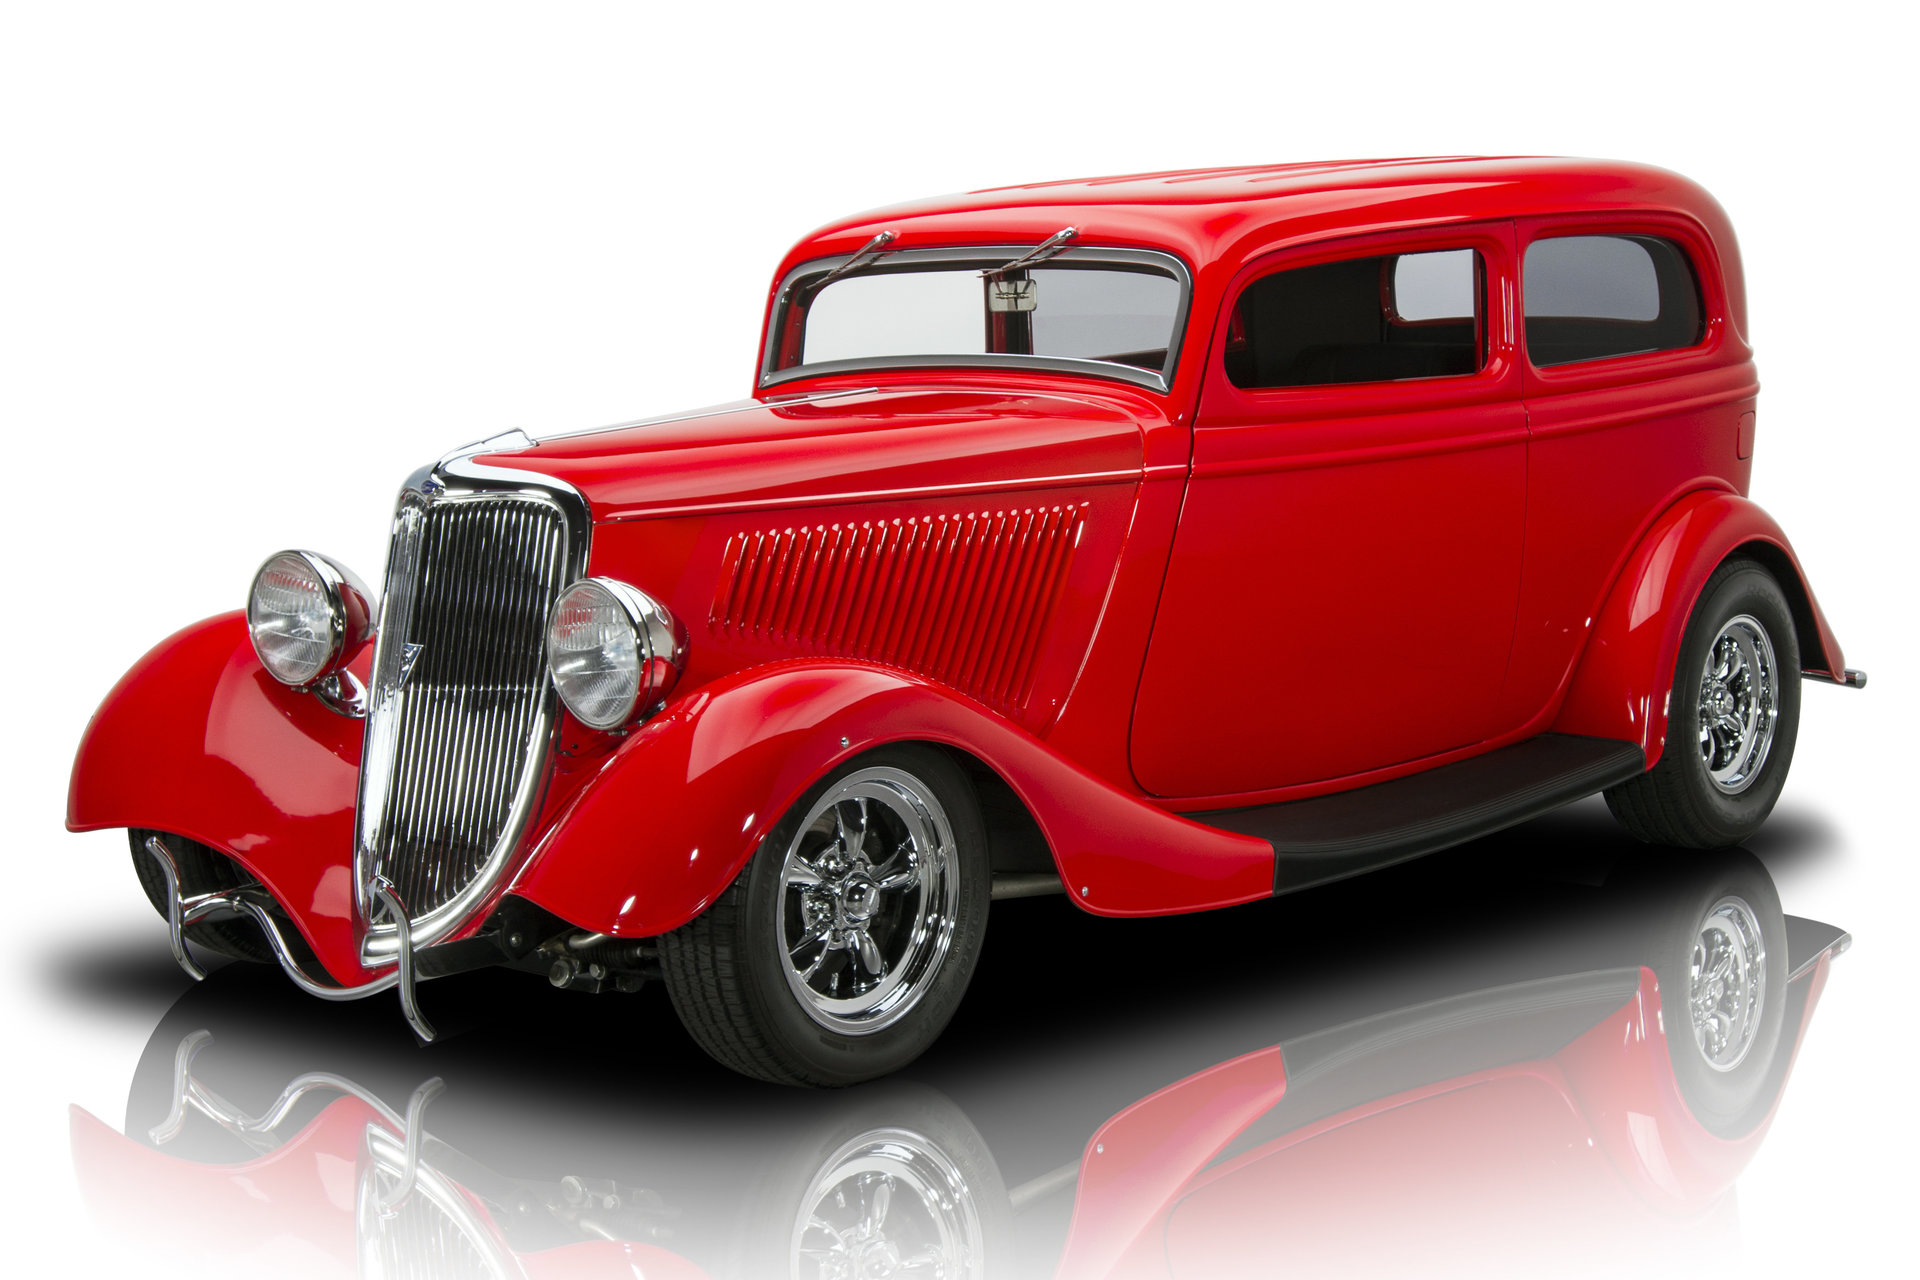 136047 1934 Ford Tudor | RK Motors Classic and Performance Cars for Sale